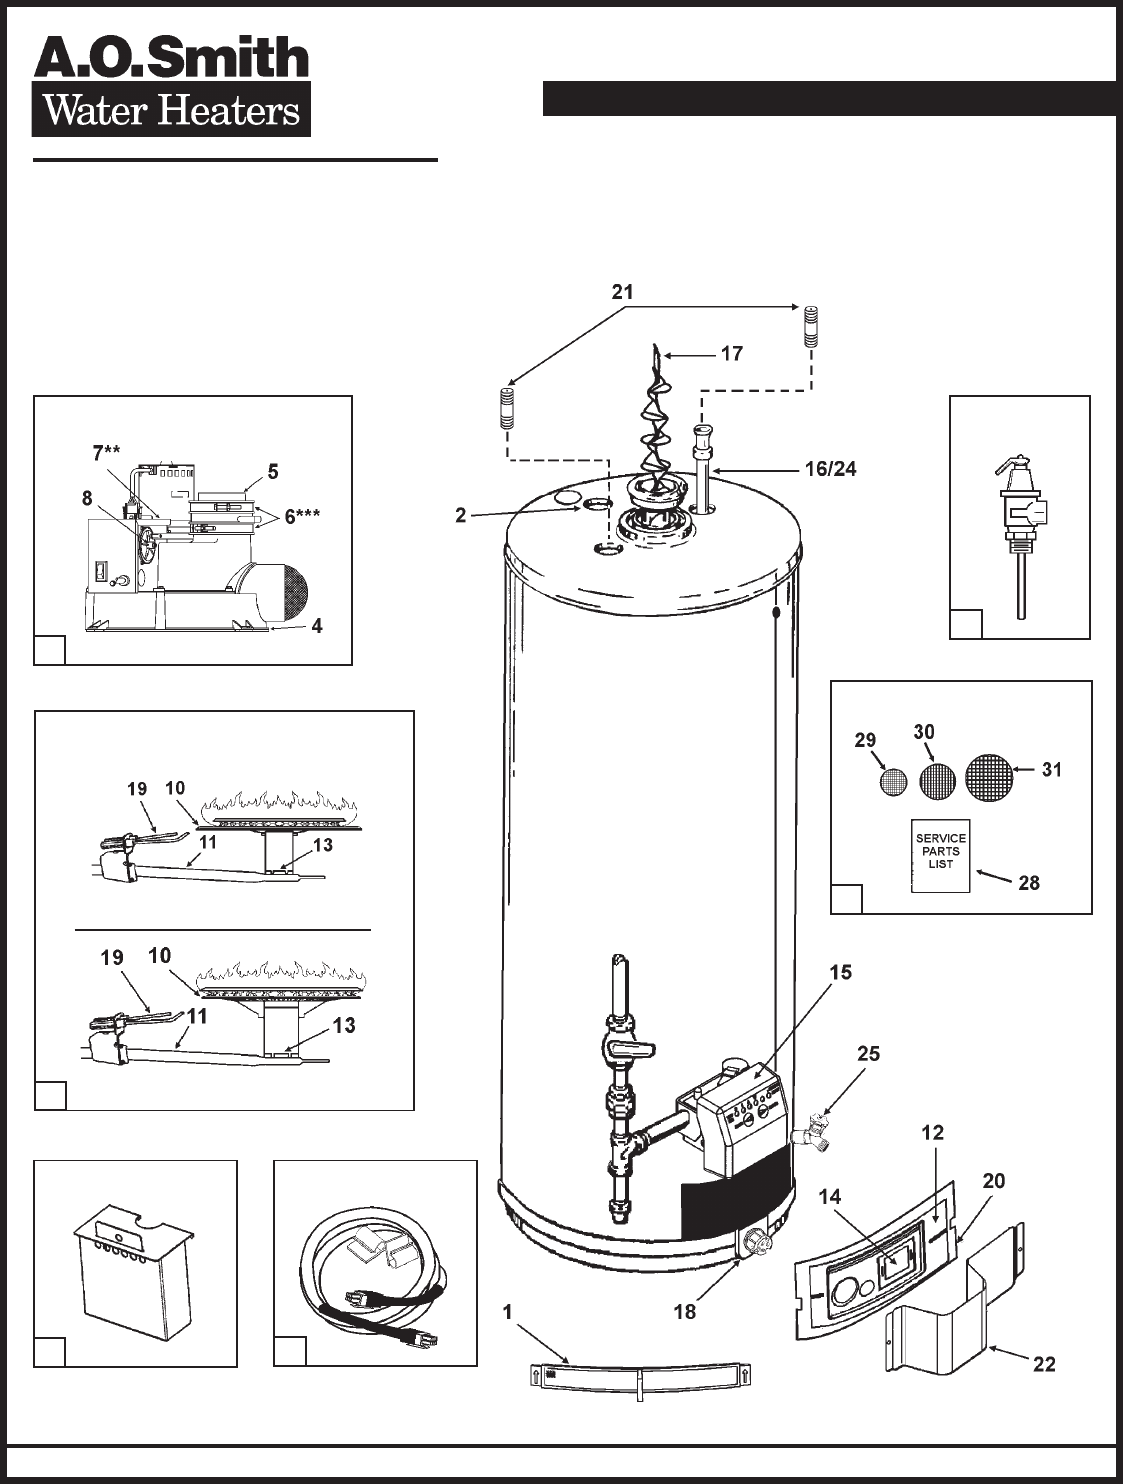 A O Smith Water Heater Gpvh 40 User Guide